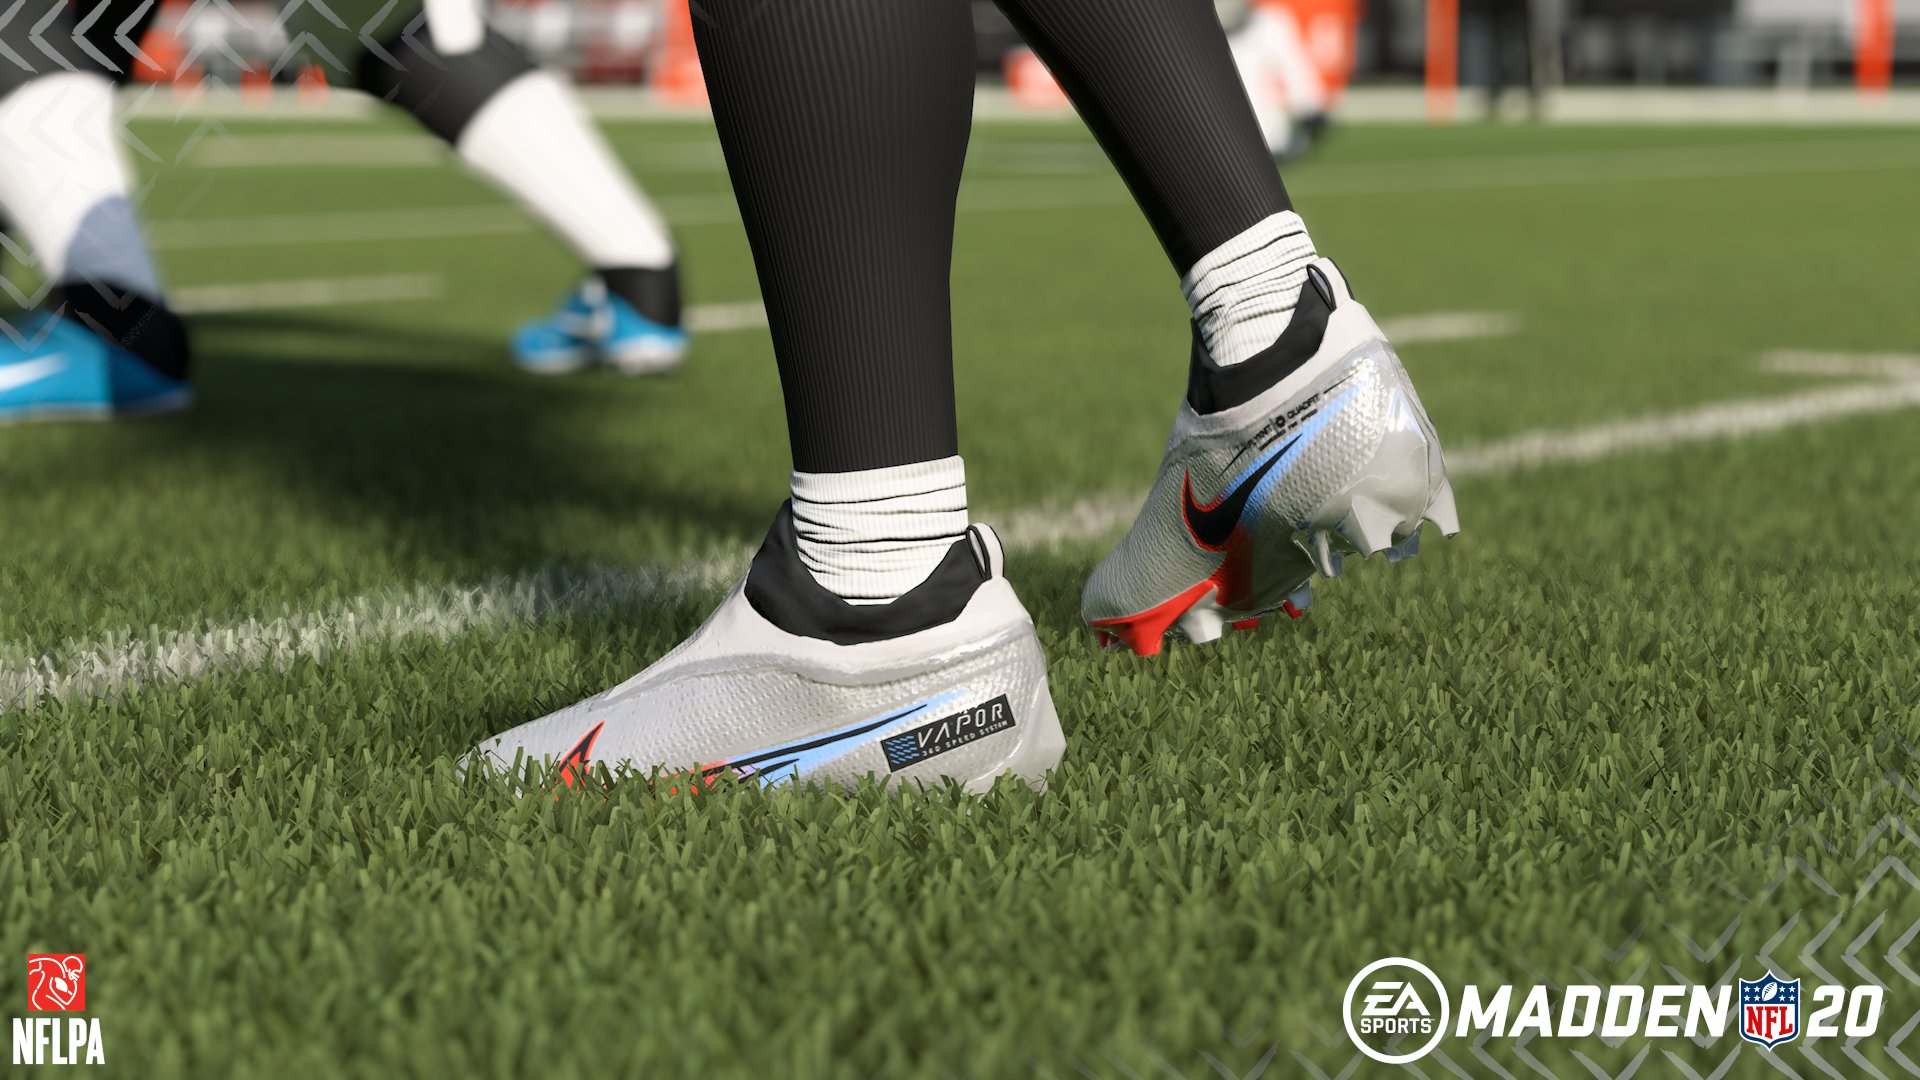 Christian McCaffrey gets faster Madden update Nike cleats